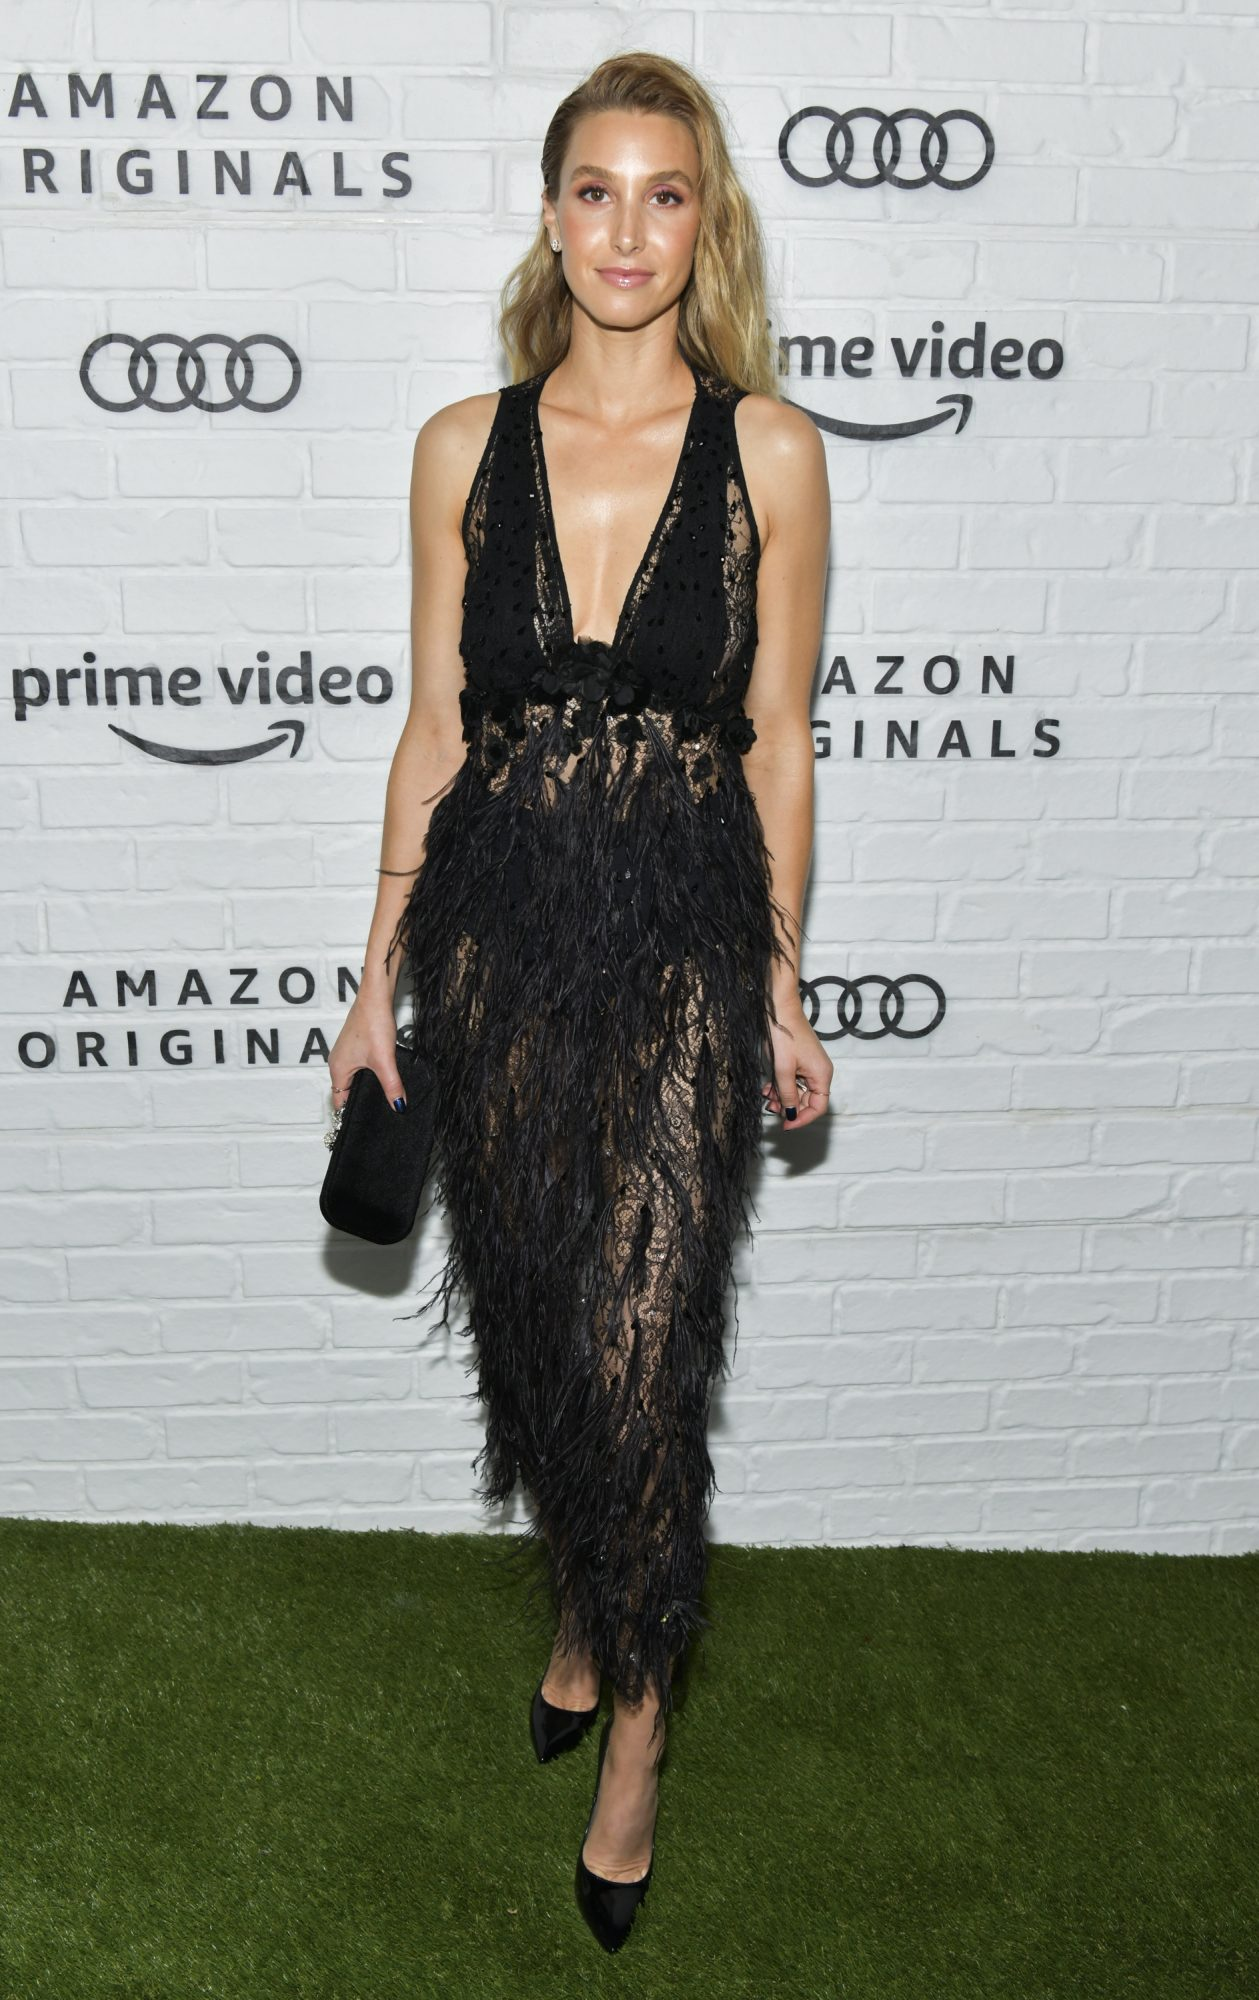 Emmys After Party - Whitney Port